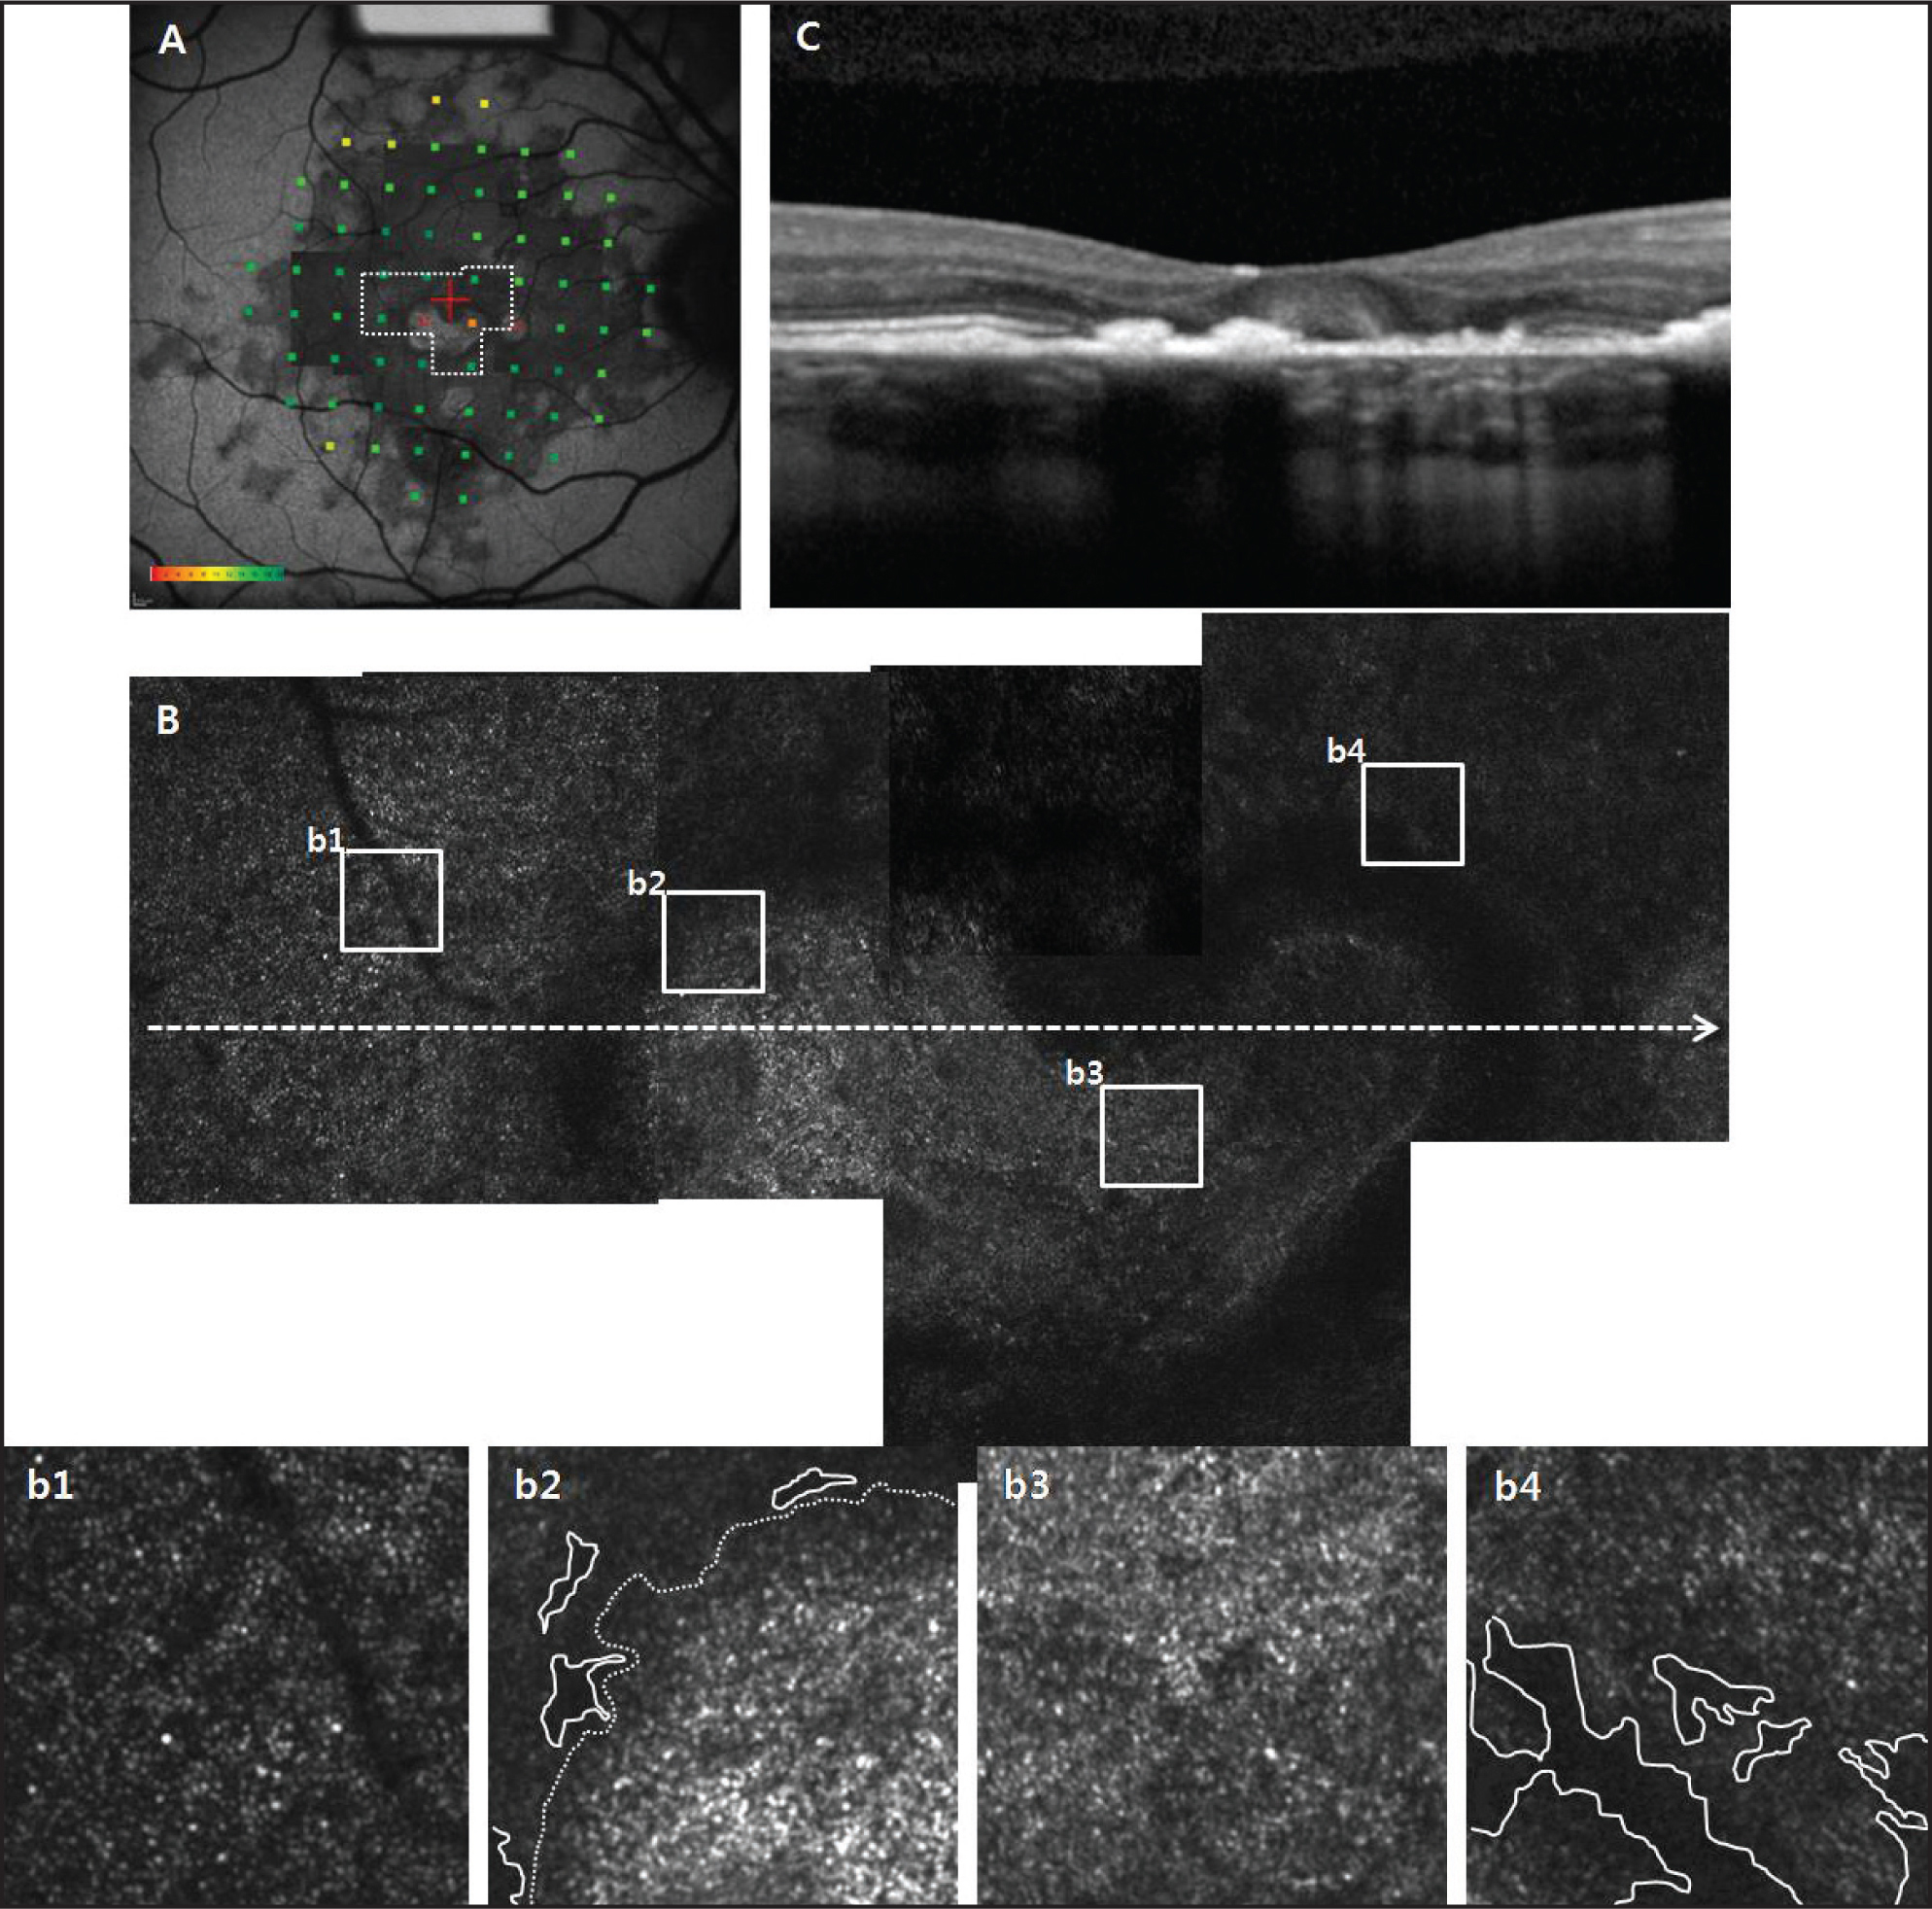 (A) A montage of adaptive optics scanning laser ophthalmoscopy images from the right eye is superimposed on the fundus autofluorescence image with MP1 sensitivities. (B) Enlarged composite adaptive optics scanning laser ophthalmoscopy images of the regions outlined with a dashed white line in A reveal hyperreflective regions with dark annuli. (b1–b4) Higher-magnification views of the boxed regions of the larger montage images in A. (b1) A nearly continuous and regular cone mosaic pattern. (b2–b4) Dark areas devoid of normal wave-guiding cones and highly reflective regions are observed in the magnified image. (C) Spectral-domain optical coherence tomography at the point indicated by white dashed line in B, demonstrating dark areas correlate with the absence of an inner/outer segment junction and hyperreflective regions consistent with the dome-shaped hyperreflective deposit. The area with disrupted and/or abnormal cells in b2 is depicted by a white dashed line, and the left side of the white dashed line shows a less compact distribution of cones including dark lesions which are indicated by white lines. Through the comparison with other images, b3 may only include the disrupted and/or abnormal cells. Typical dark lesions in b2 and b4 are indicated by white lines.